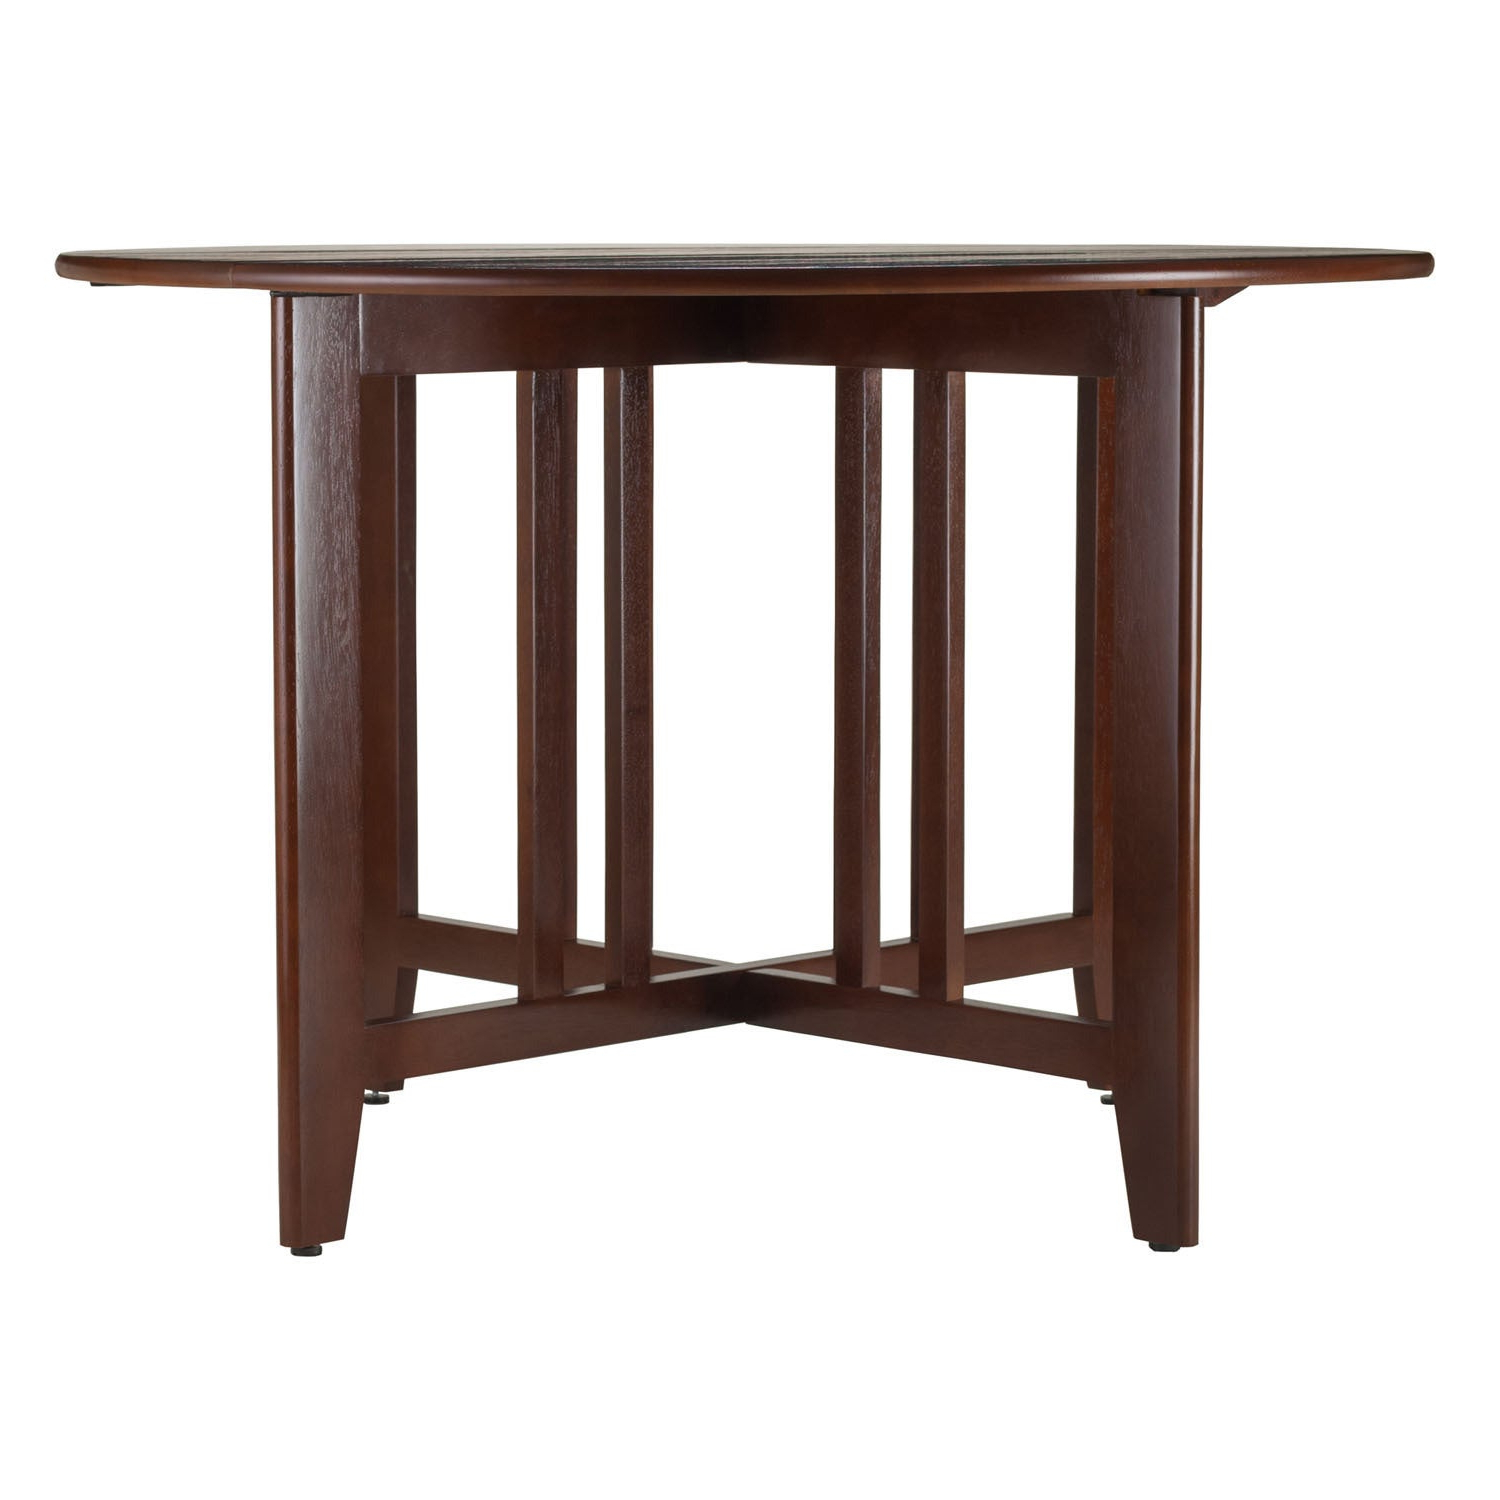 "Alamo Transitional 4 Seating Double Drop Leaf Round Casual Dining Tables With Preferred Alamo Double Drop Leaf Round 42"" Table Mission – N/a (View 2 of 26)"